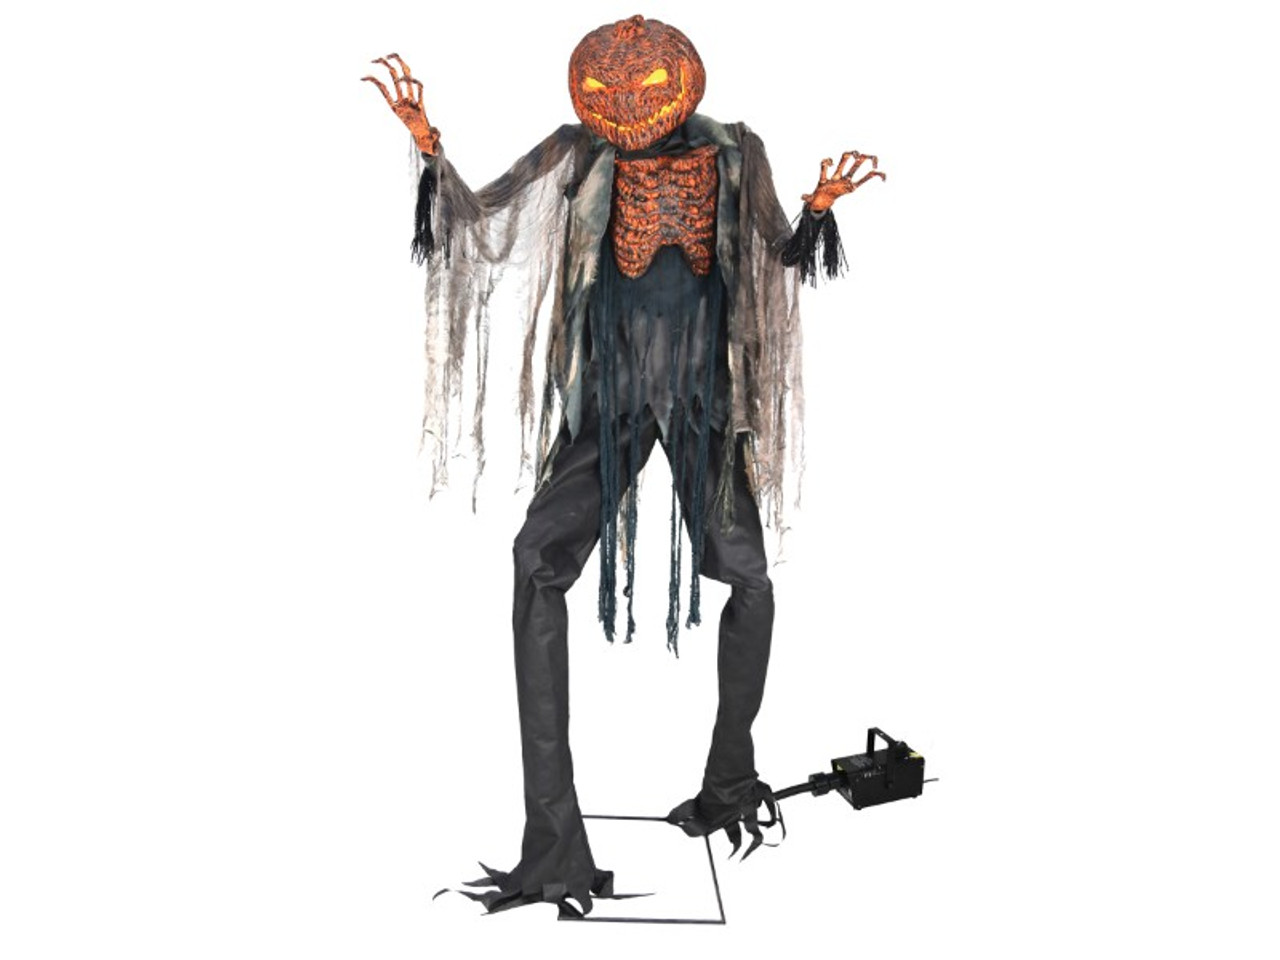 7 ft scary pumpkin scarecrow animated for Animated scarecrow decoration